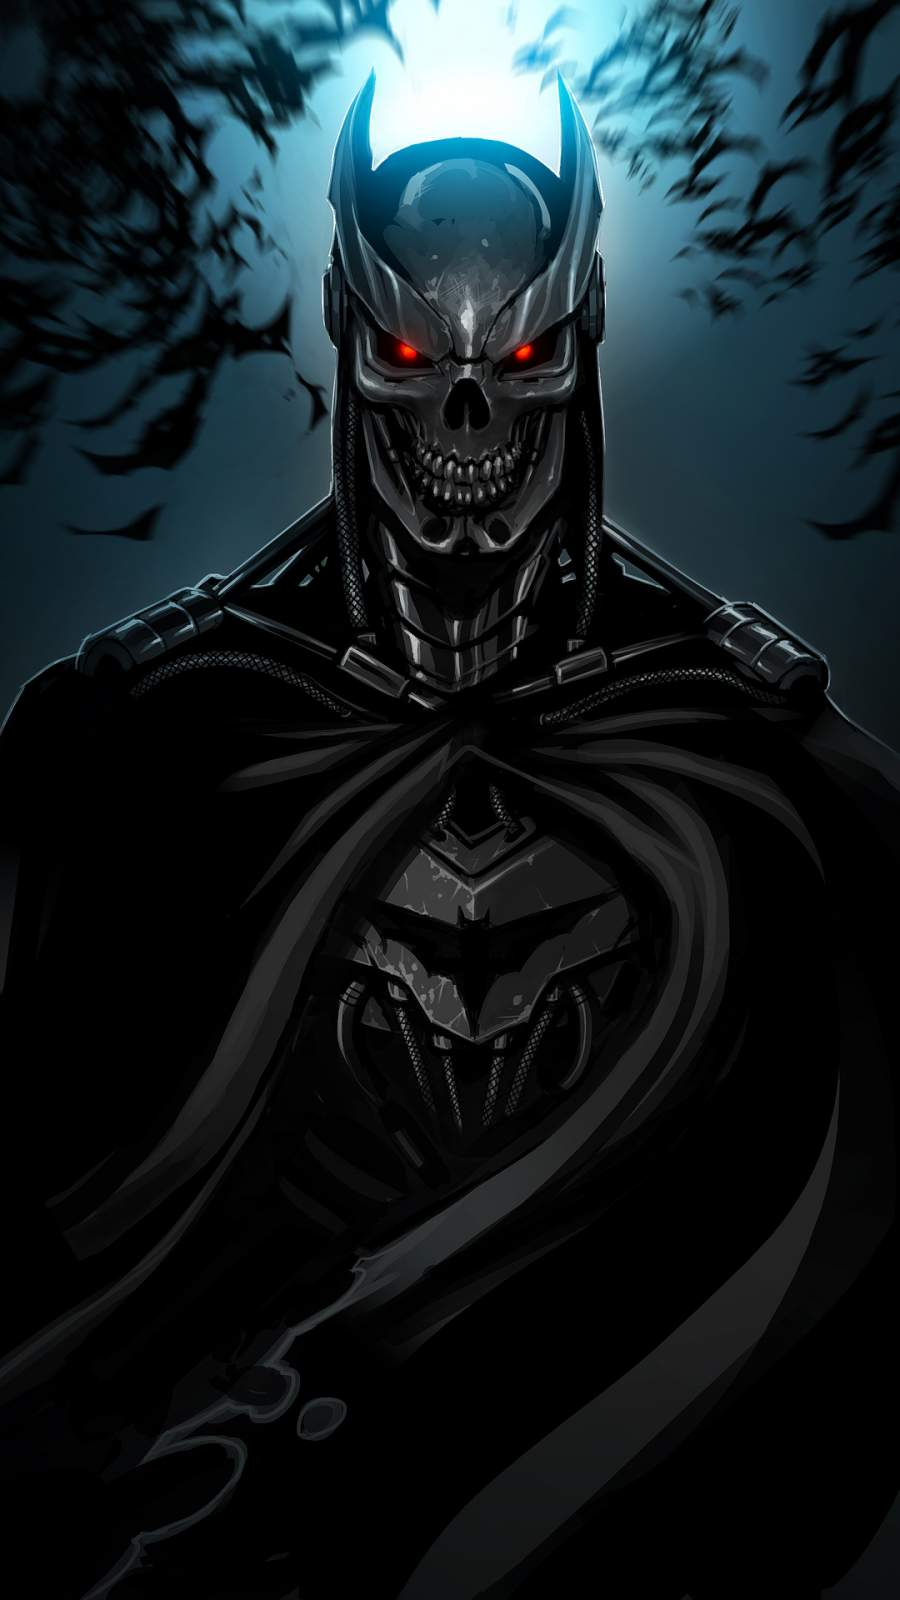 Terminator Batman iPhone Wallpaper